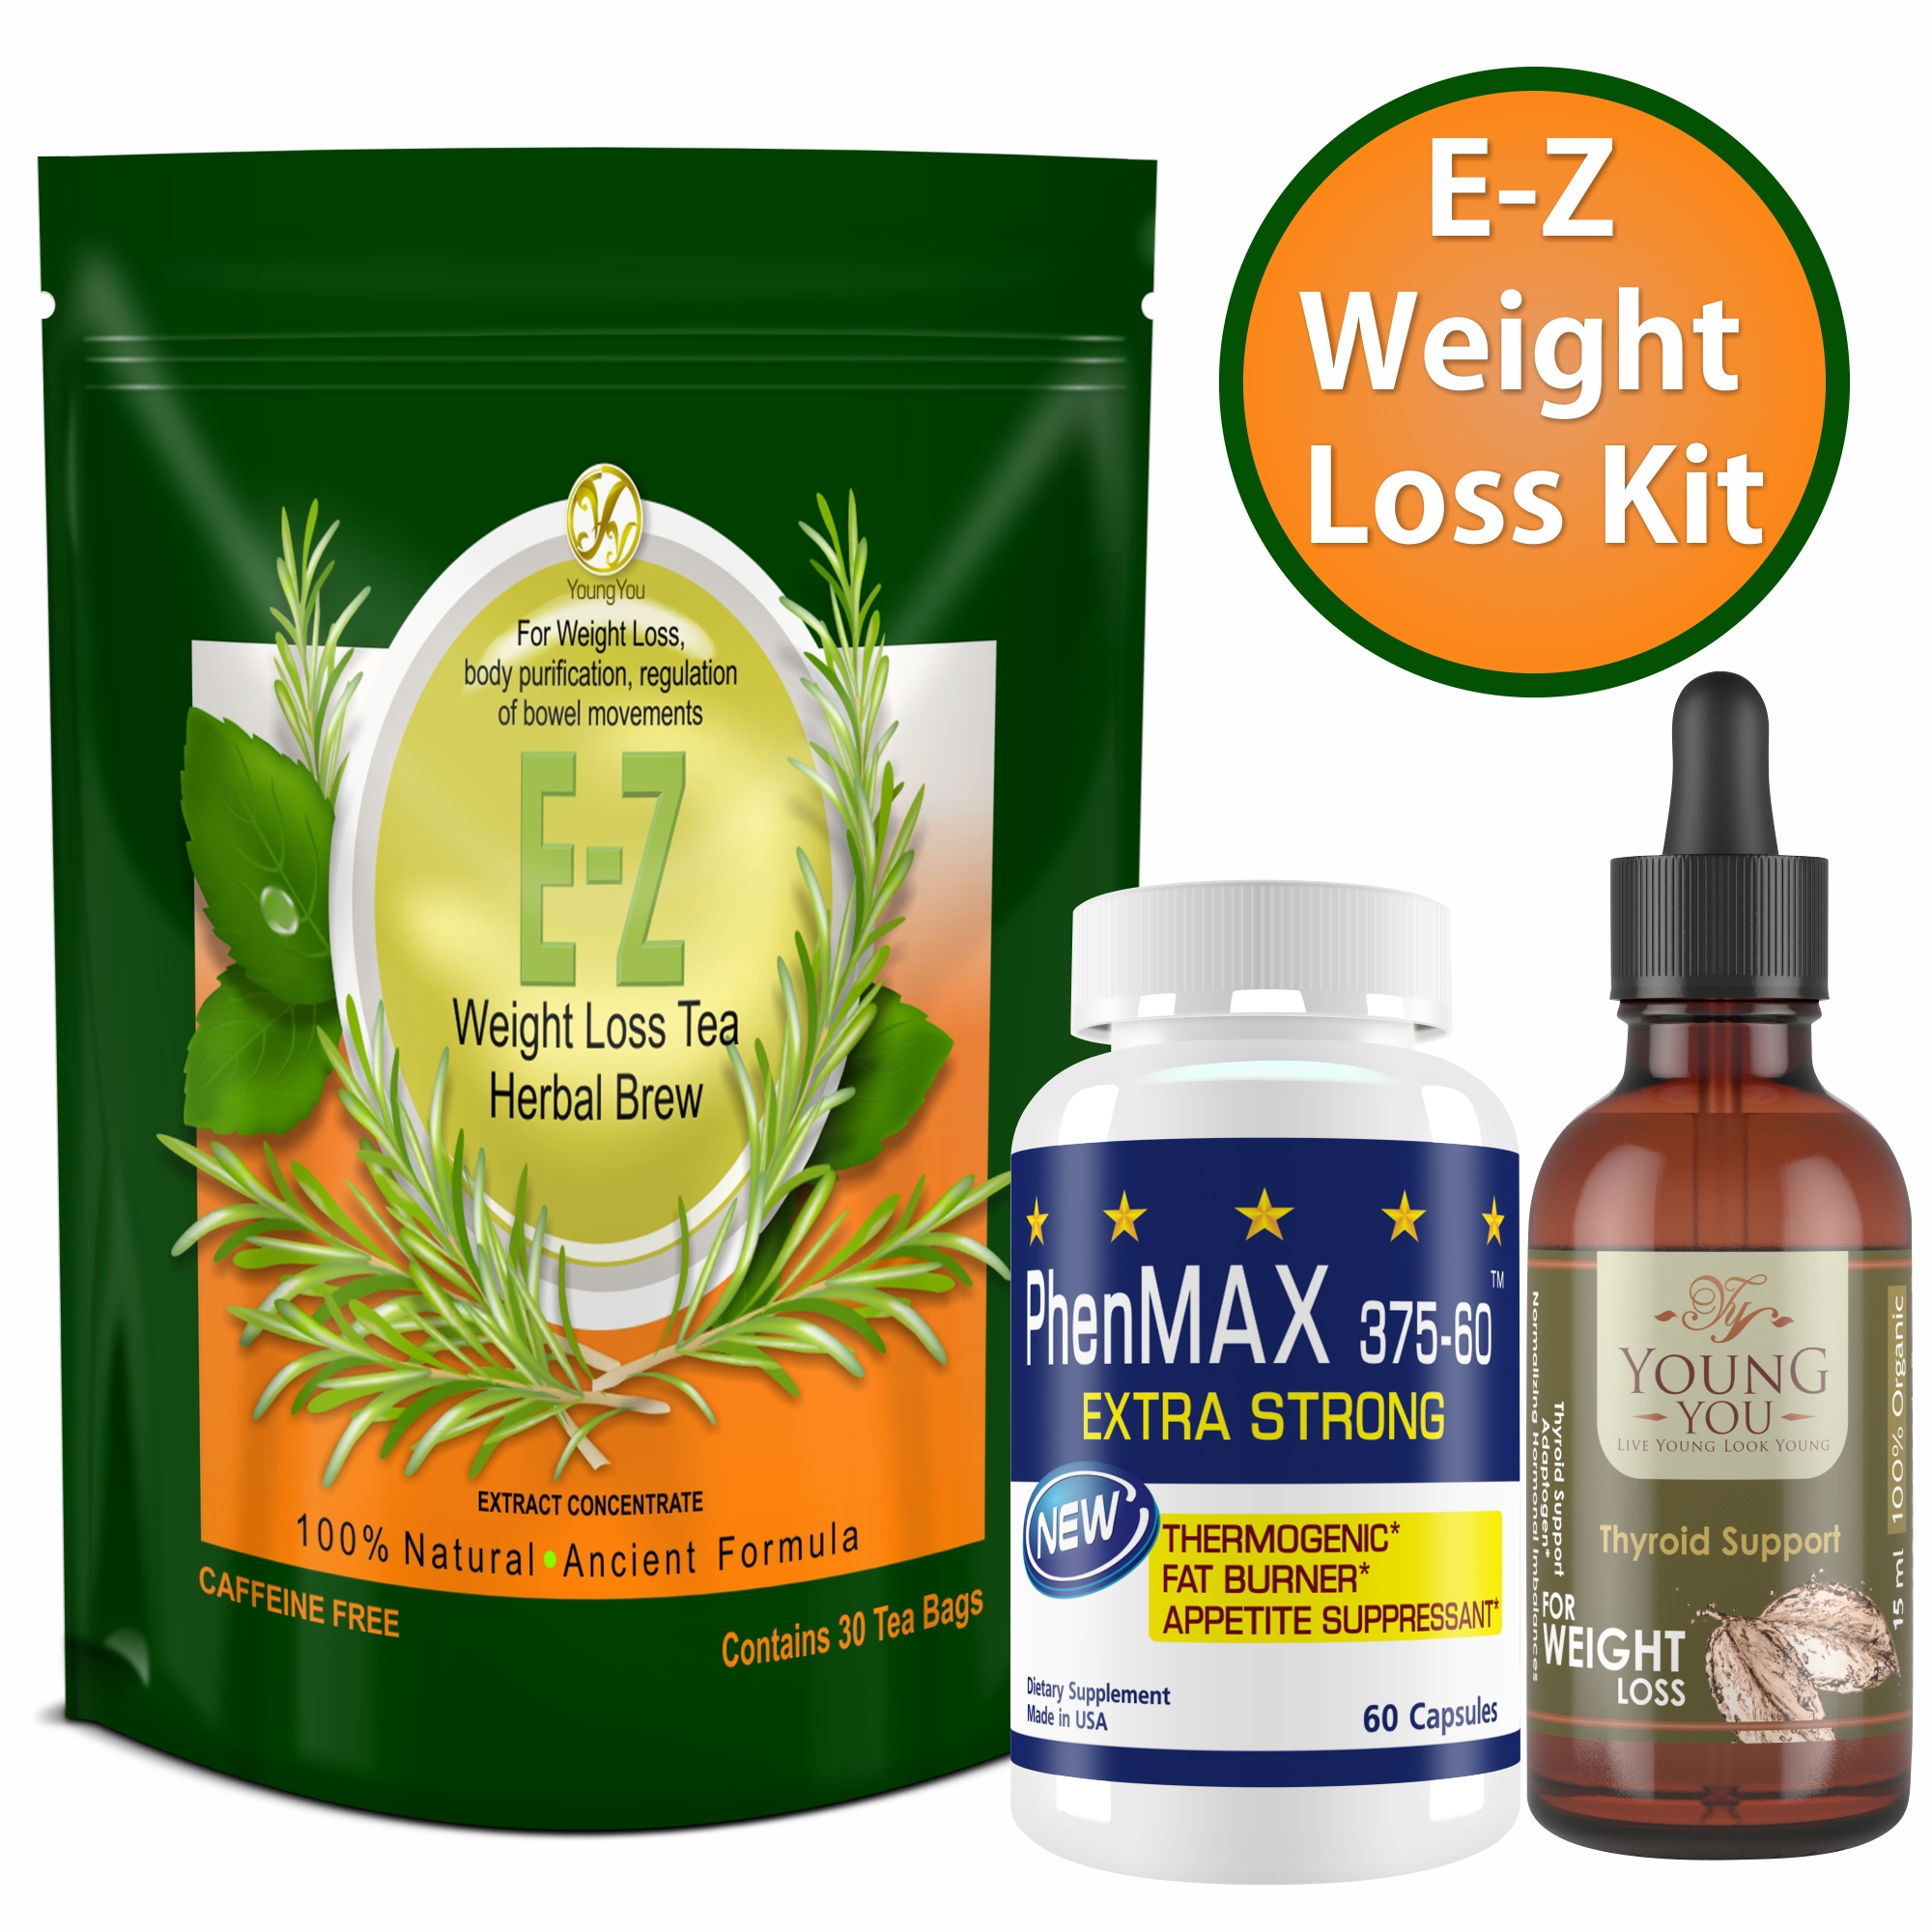 YoungYou Organix Weight Loss Pills, Weight Loss Tea and Thyroid Support